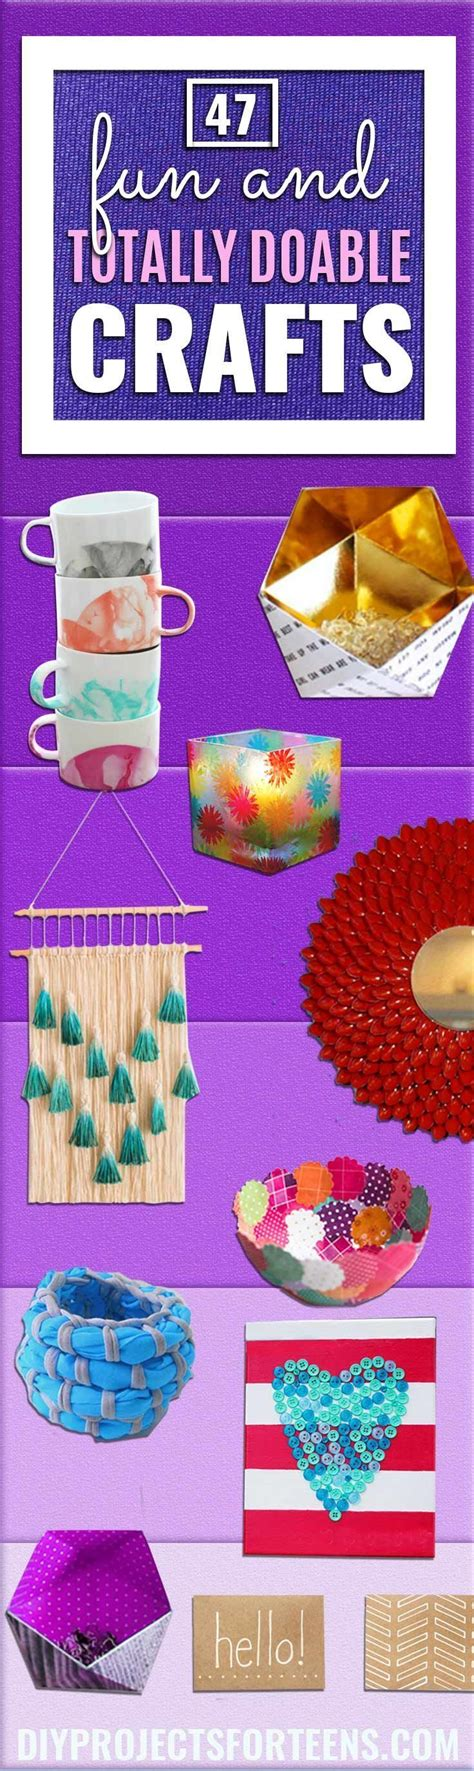 1000+ Ideas About Do It Yourself Crafts On Pinterest